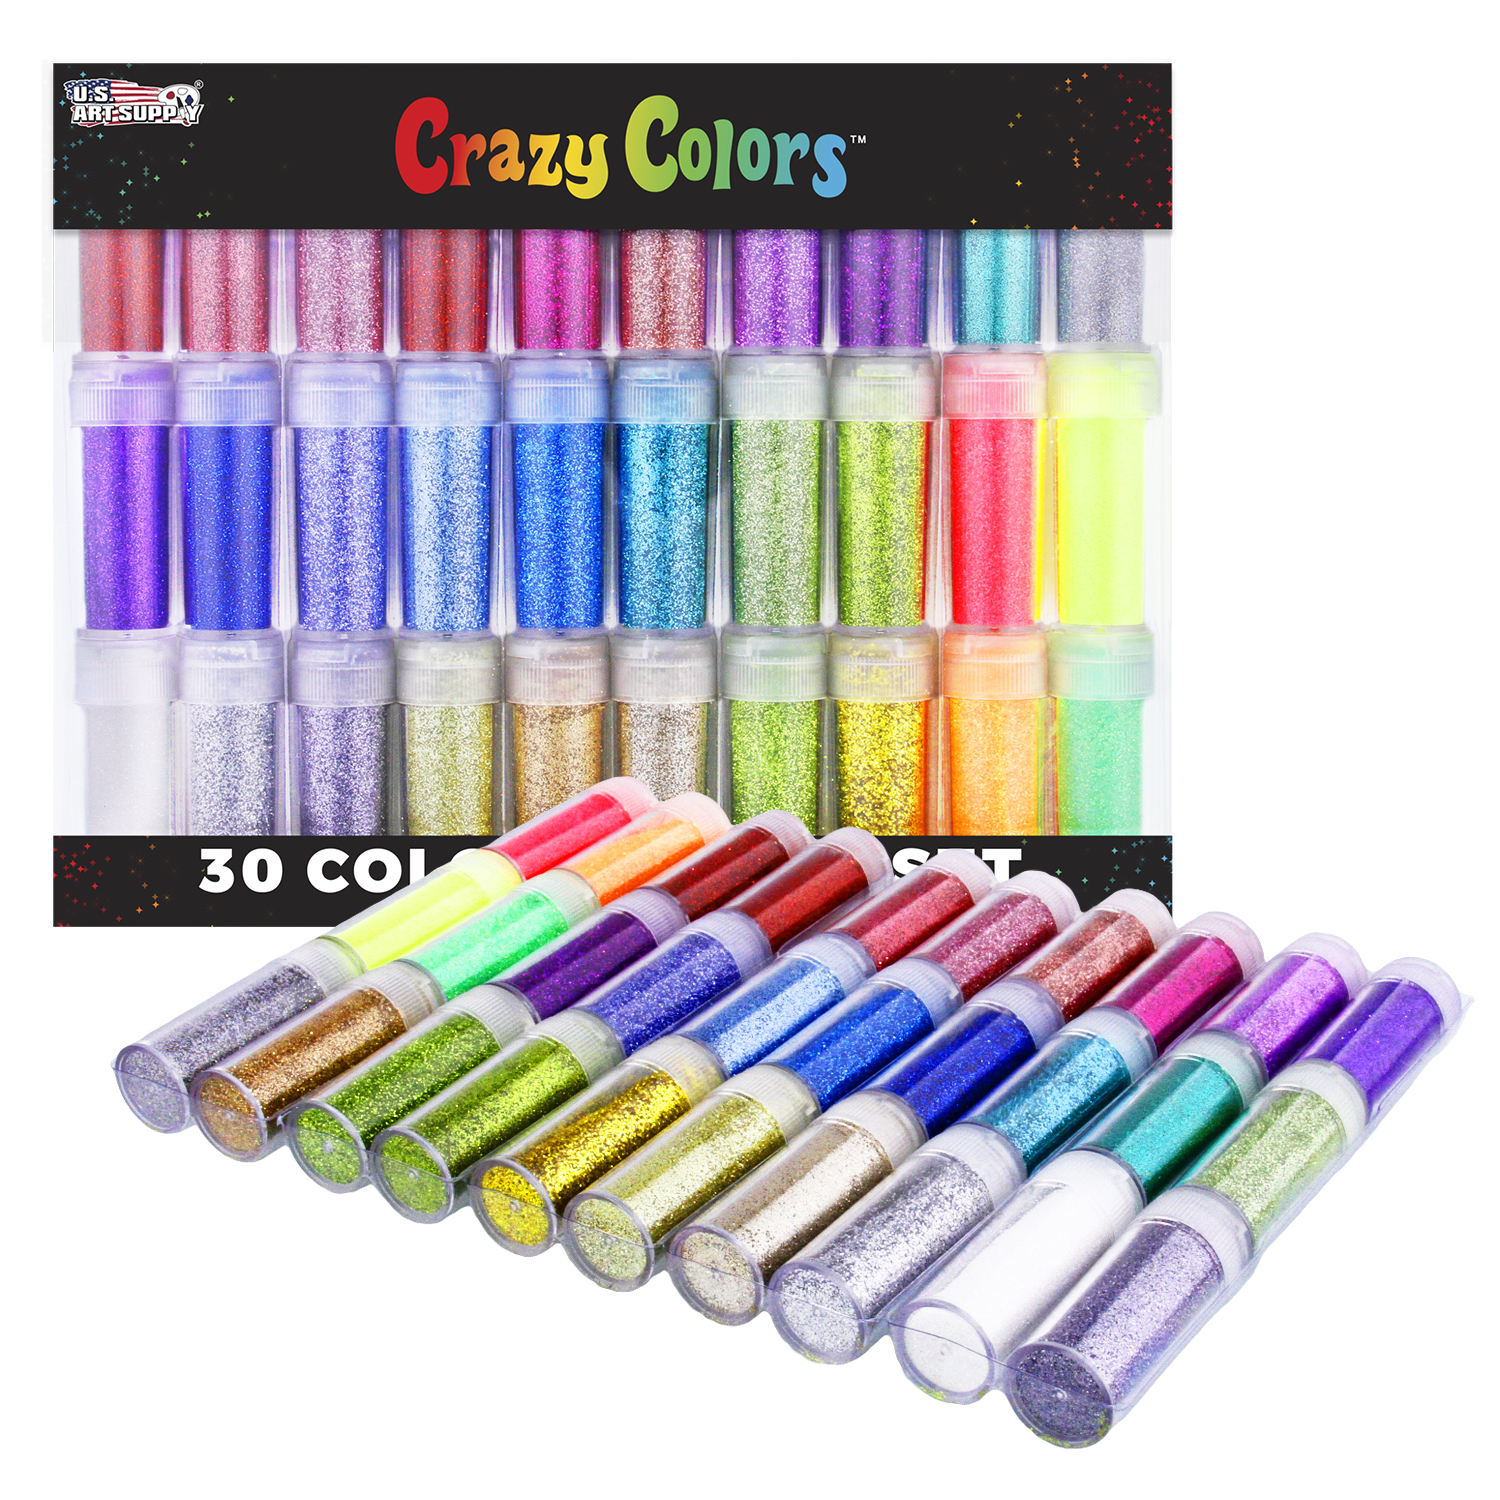 U.S. Art Supply Crazy Colors 30 Color Deluxe Glitter Shake Jars Set Kit - Extra Fine Glitter in Large 10 Gram Bottles